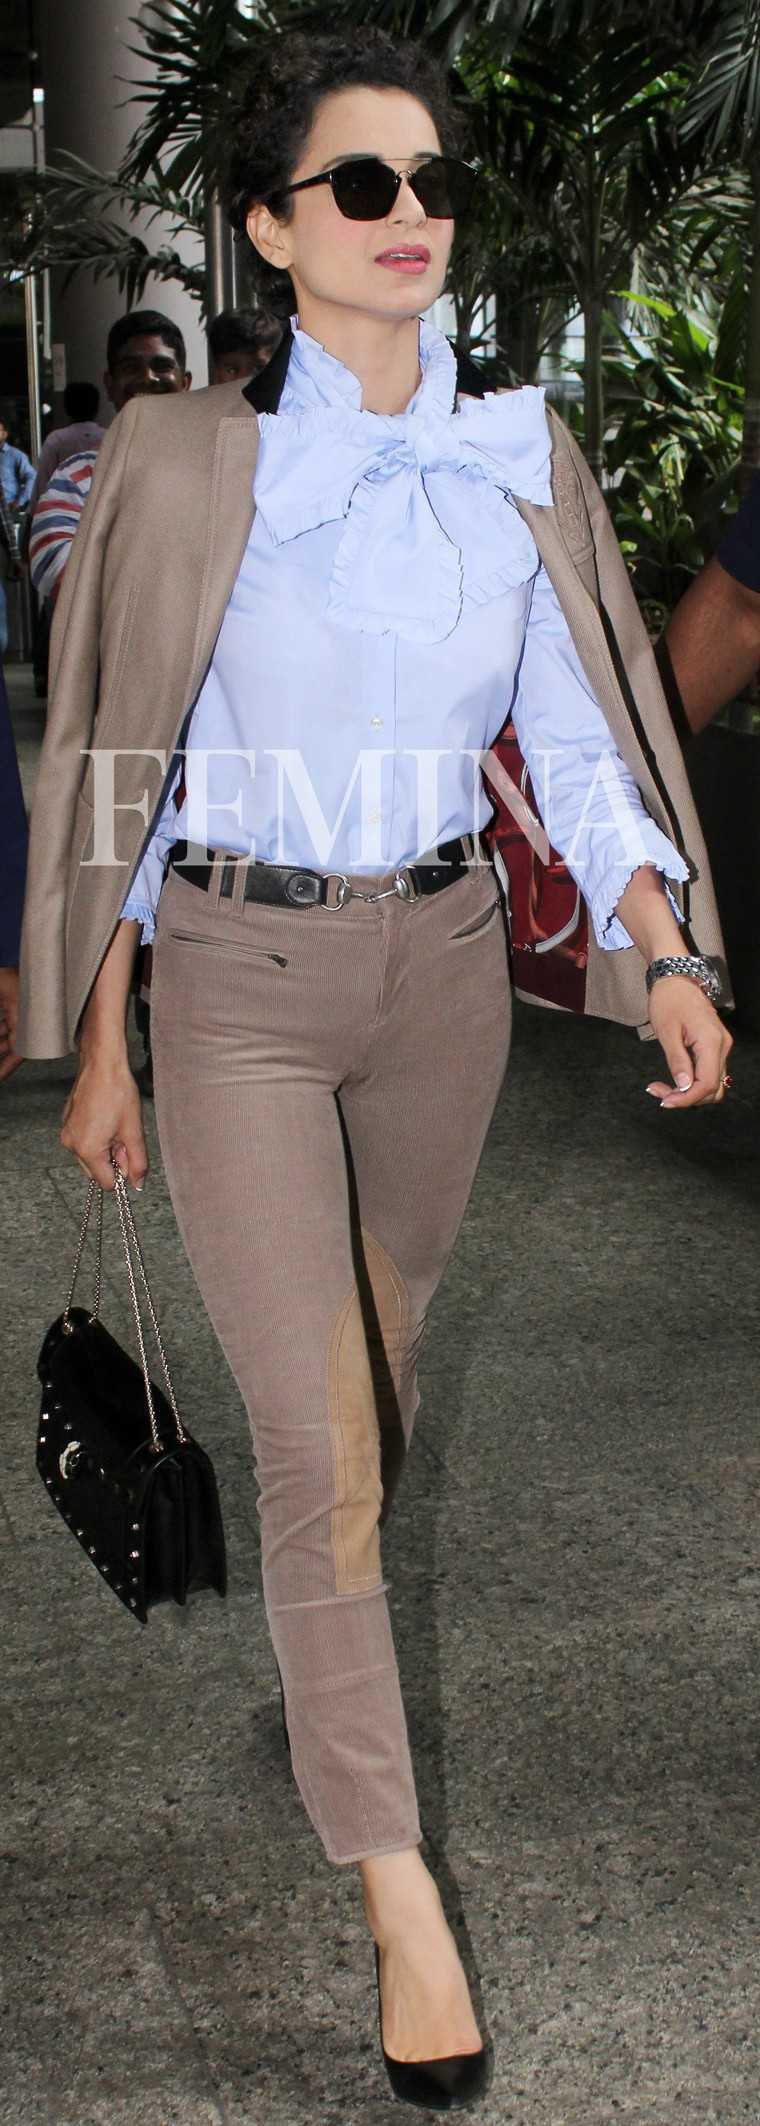 Kangana Ranaut adds a feminine touch to her Gucci pantsuit with a pussy-bow blouse.